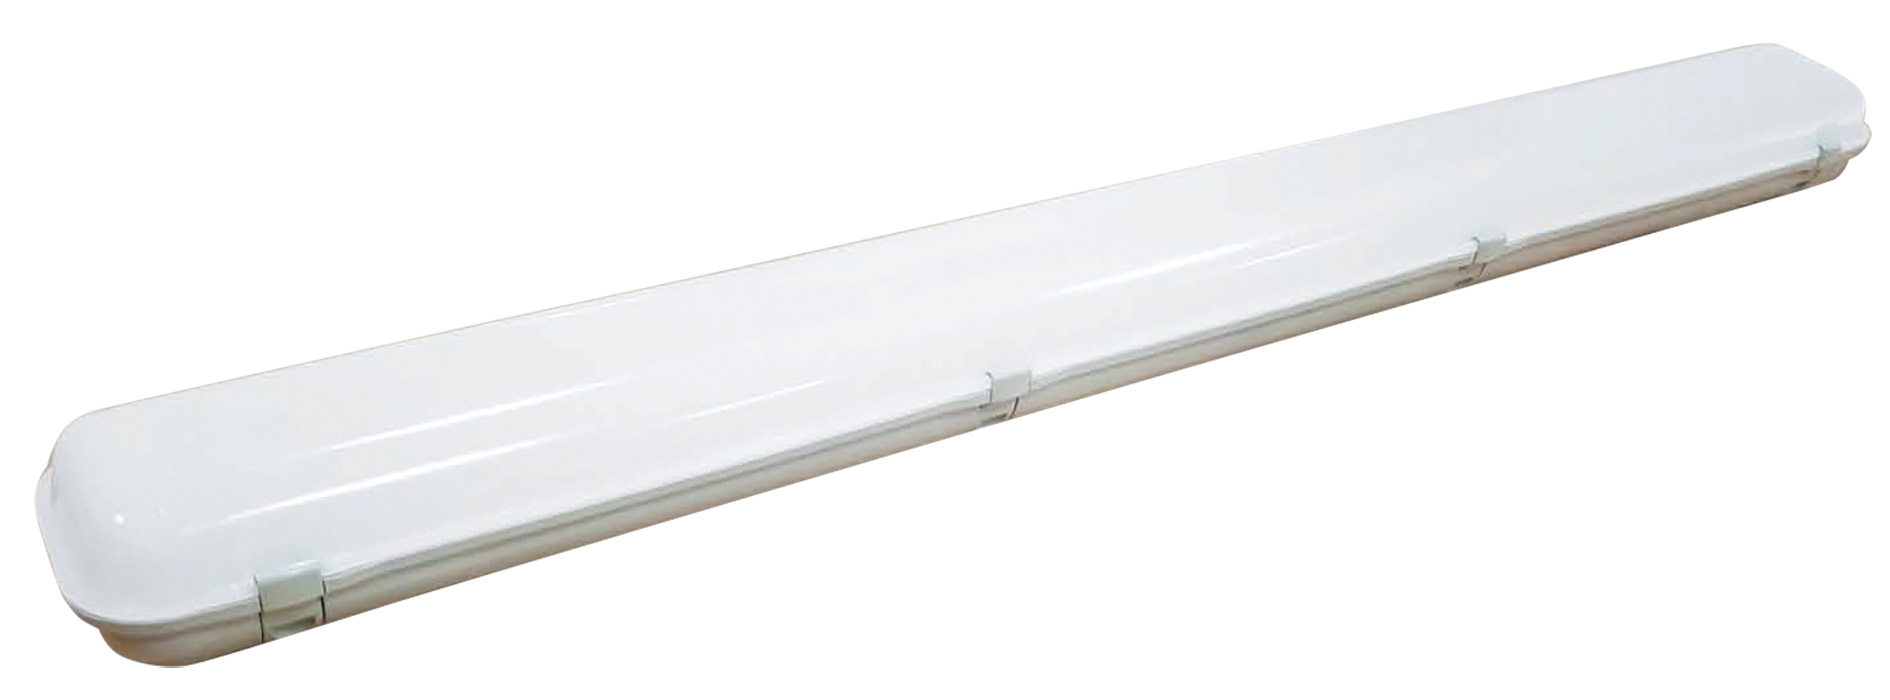 Orra Series LED Batten Light